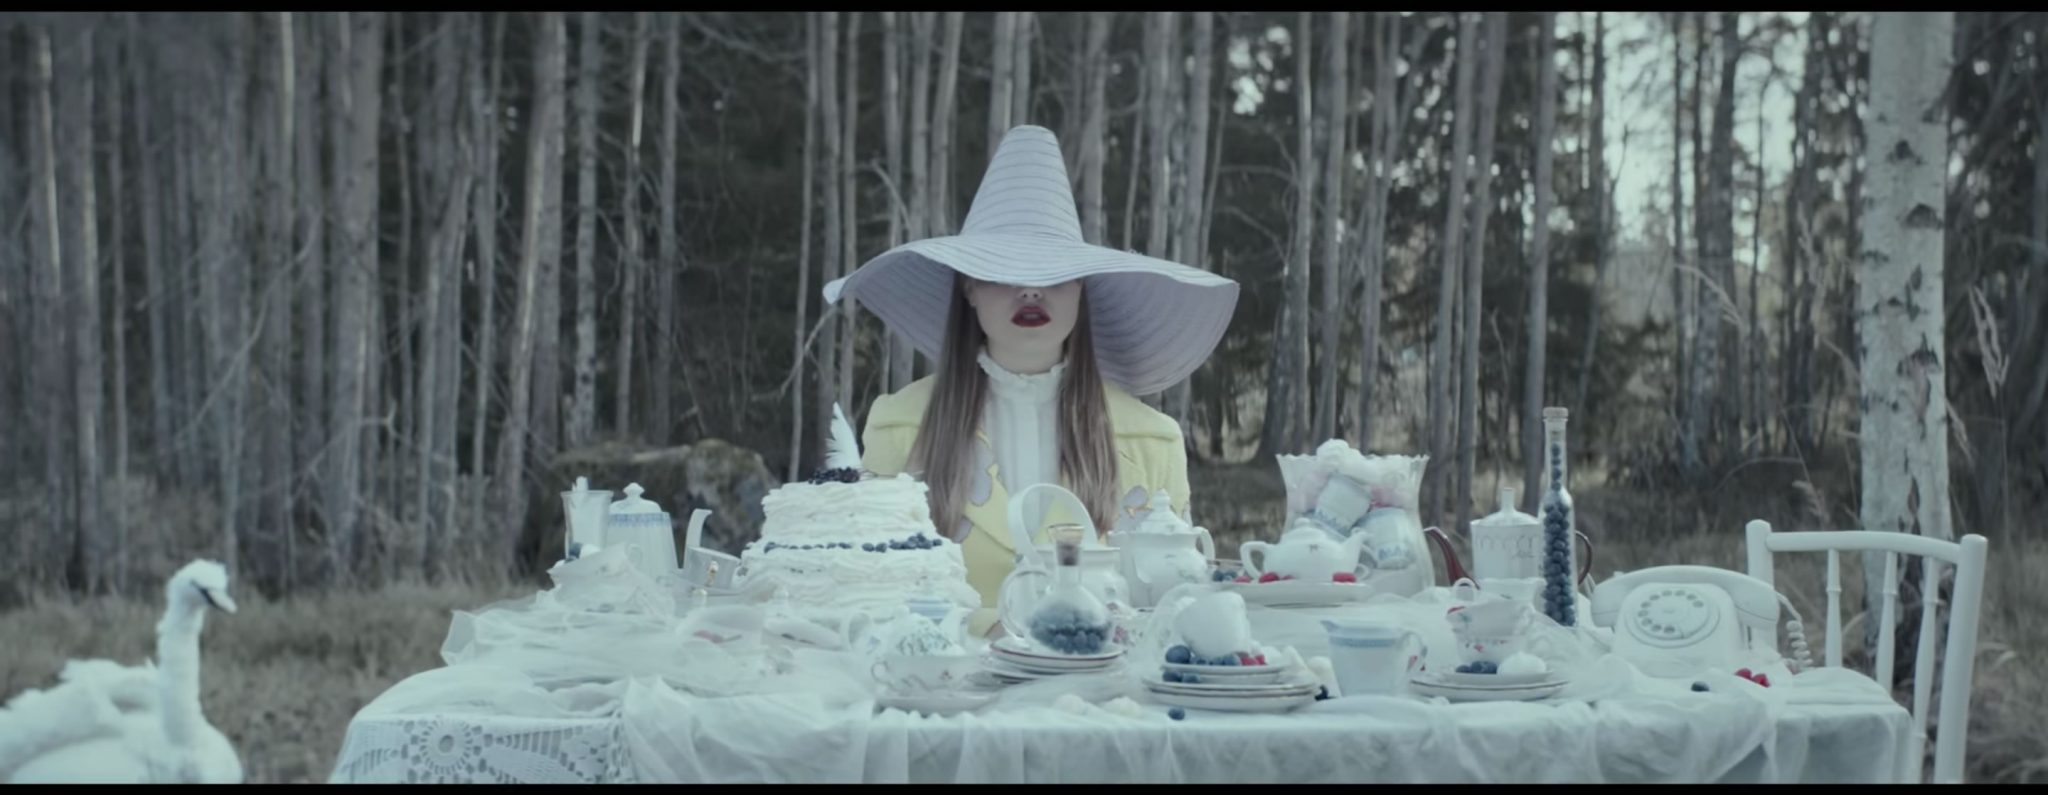 A still from Lxandra's music video 'Dig Deep', designed by Elle